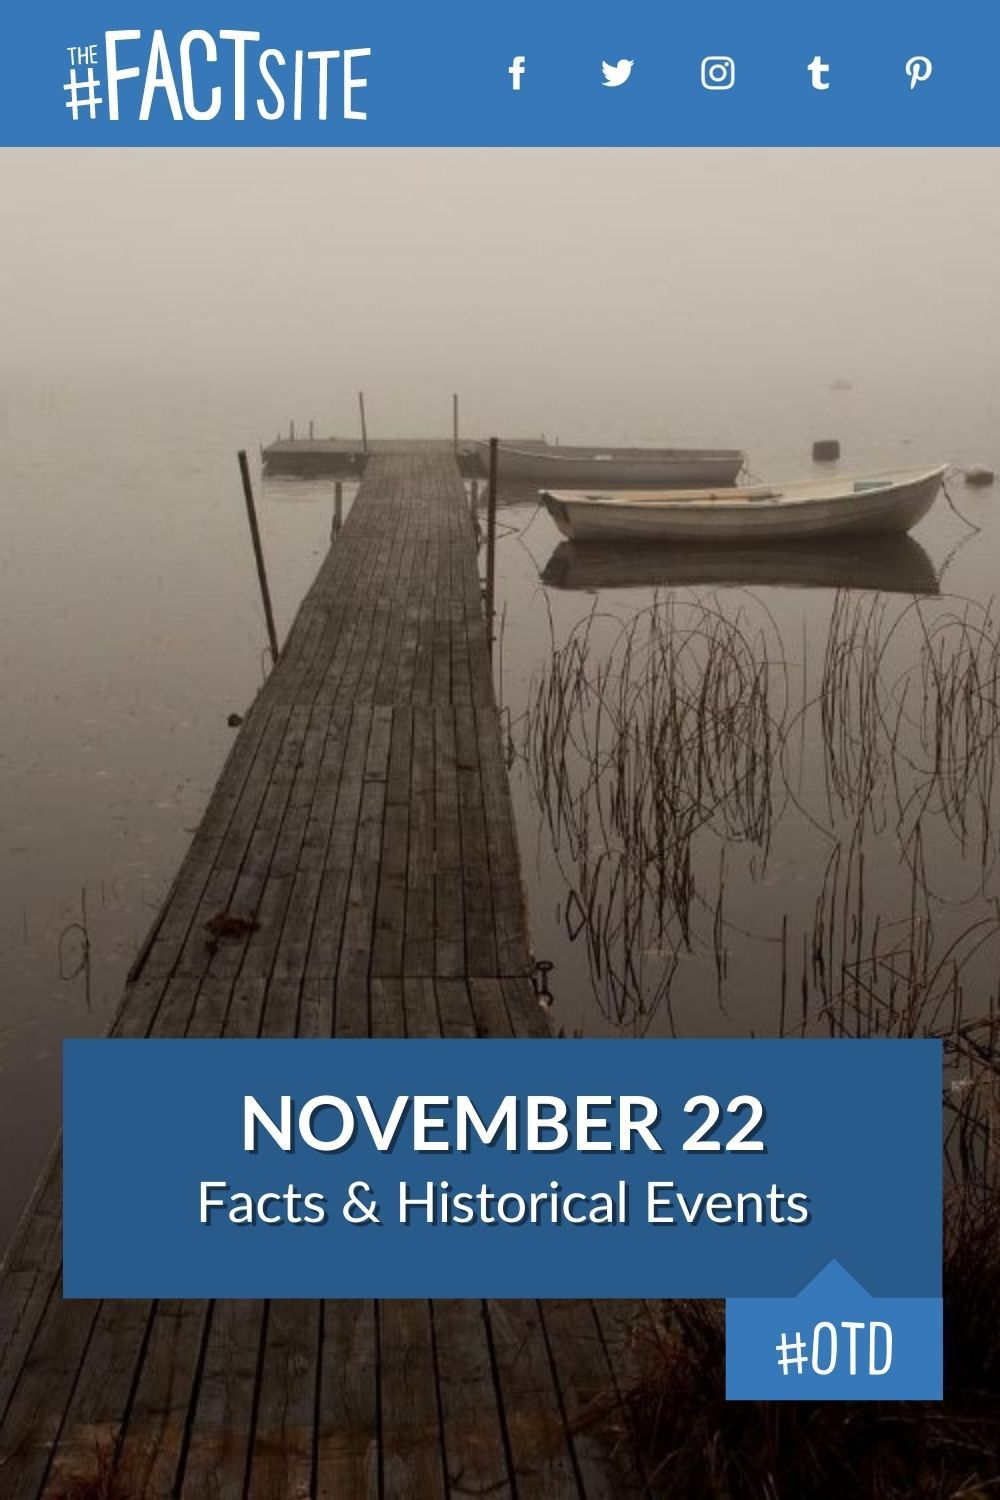 Facts & Historic Events That Happened on November 22